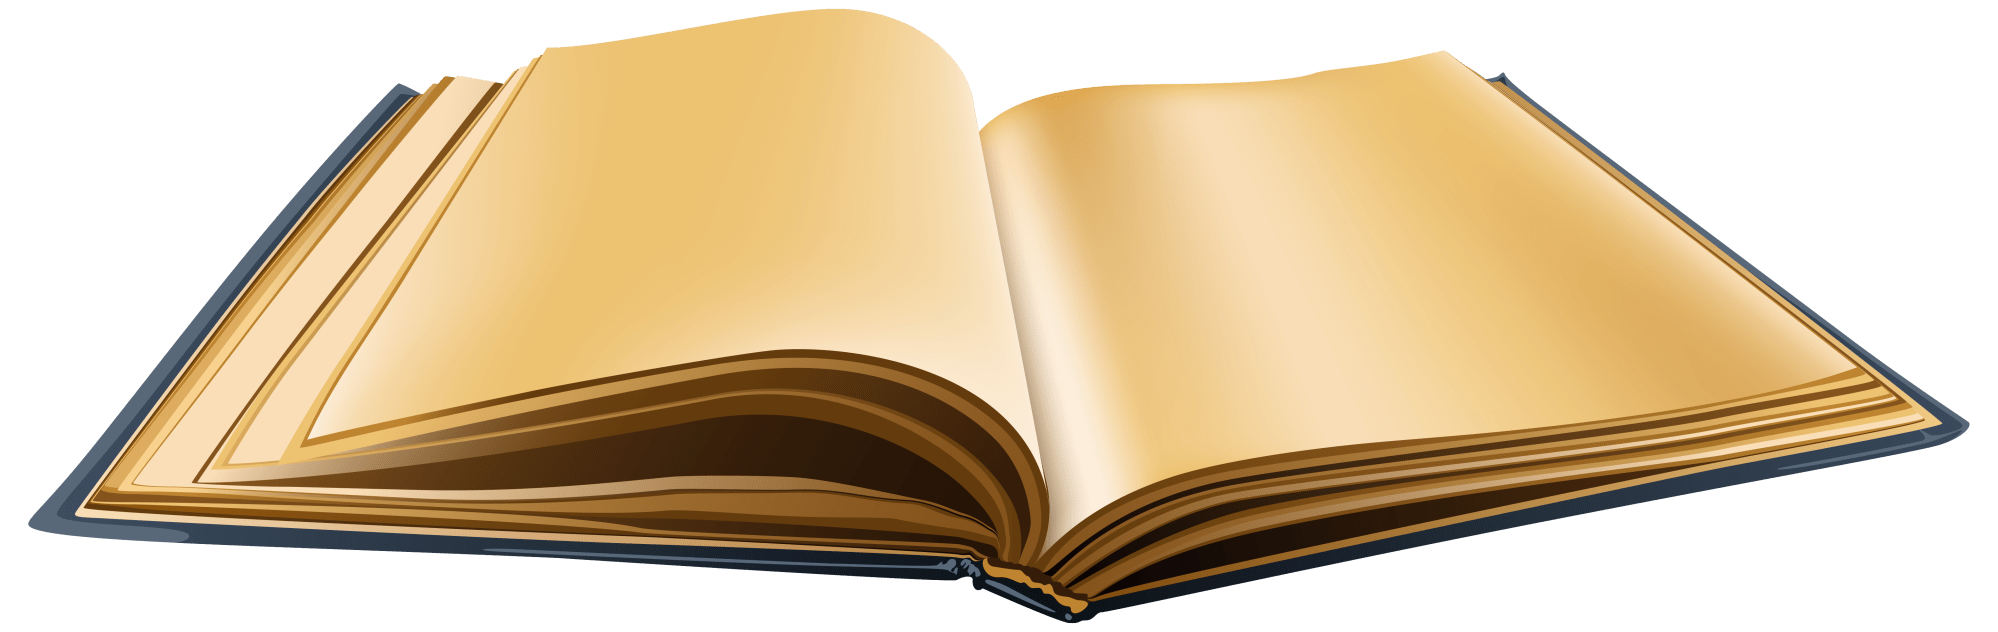 hight resolution of old book png clipart